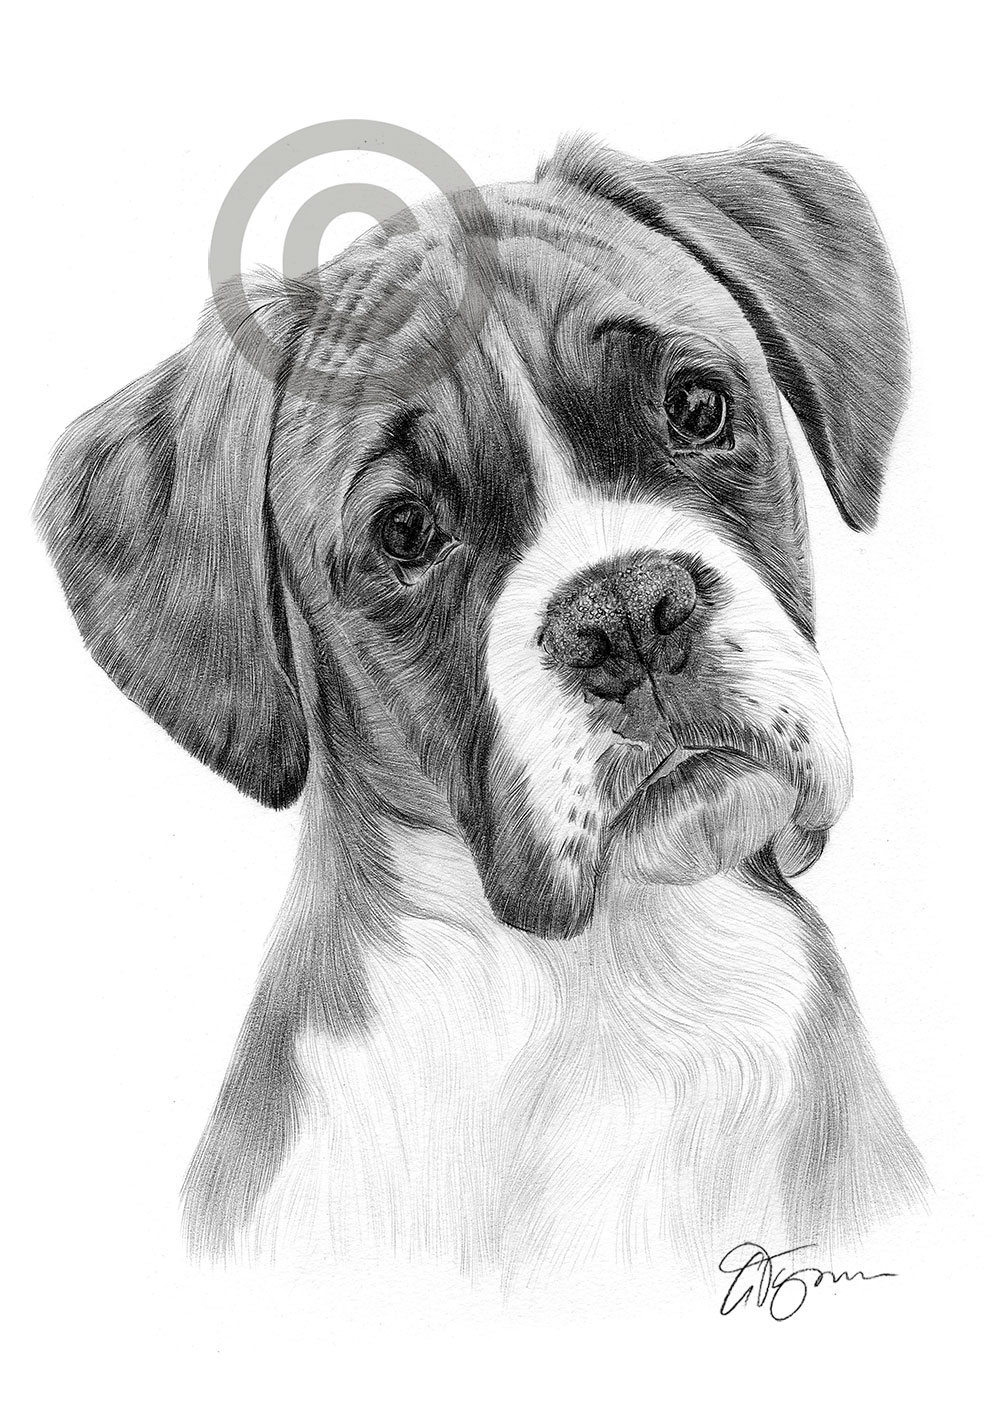 dog drawing dog golden retriever puppy pencil drawing print a4 only drawing dog